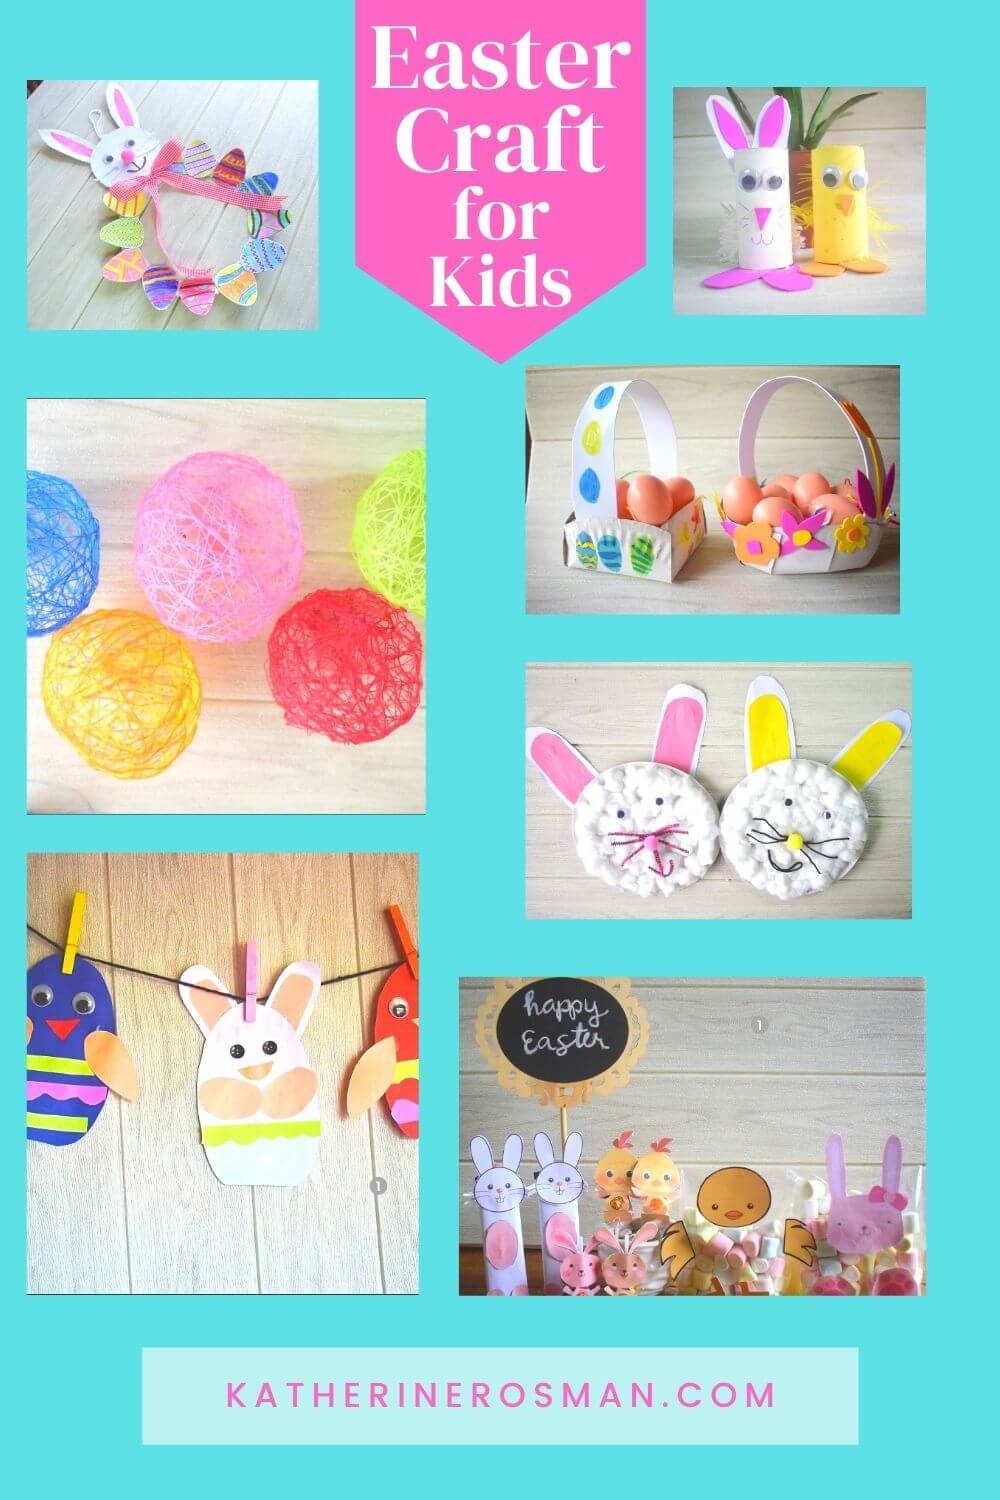 Easter Craft Ideas for Toddlers and Preschoolers